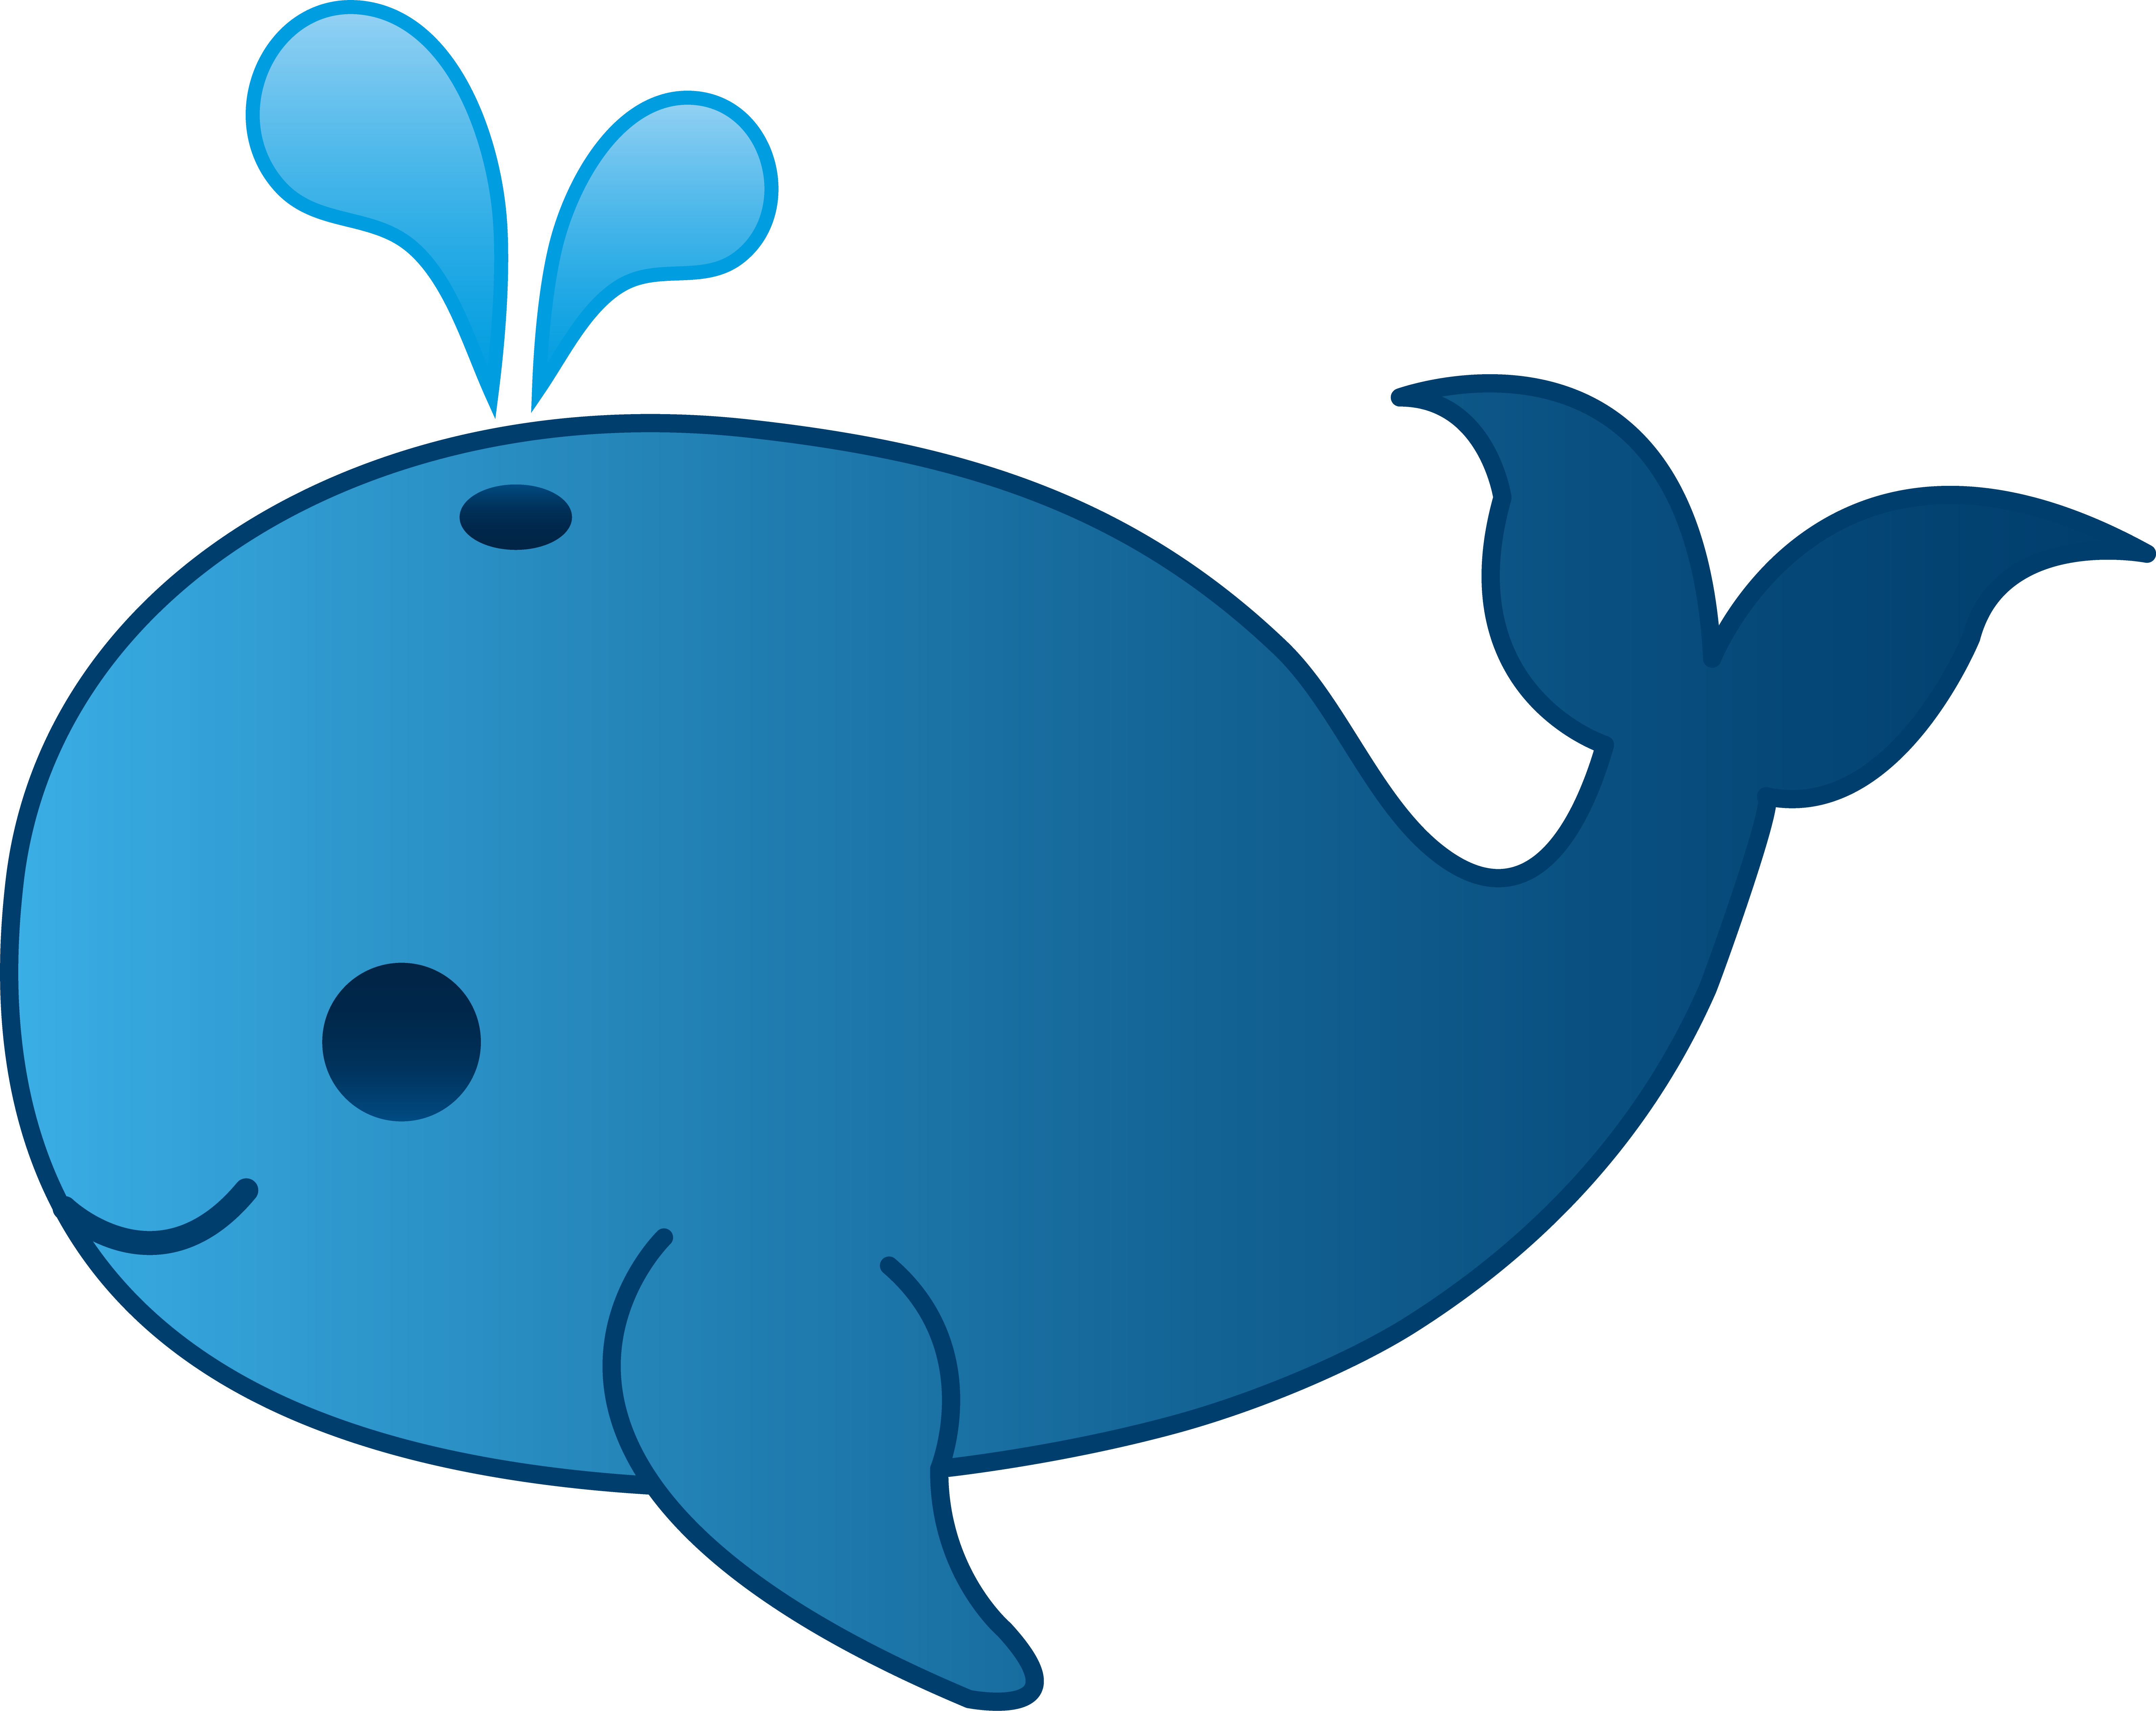 graphic black and white download Cute baby whale clipart. Little blue clip art